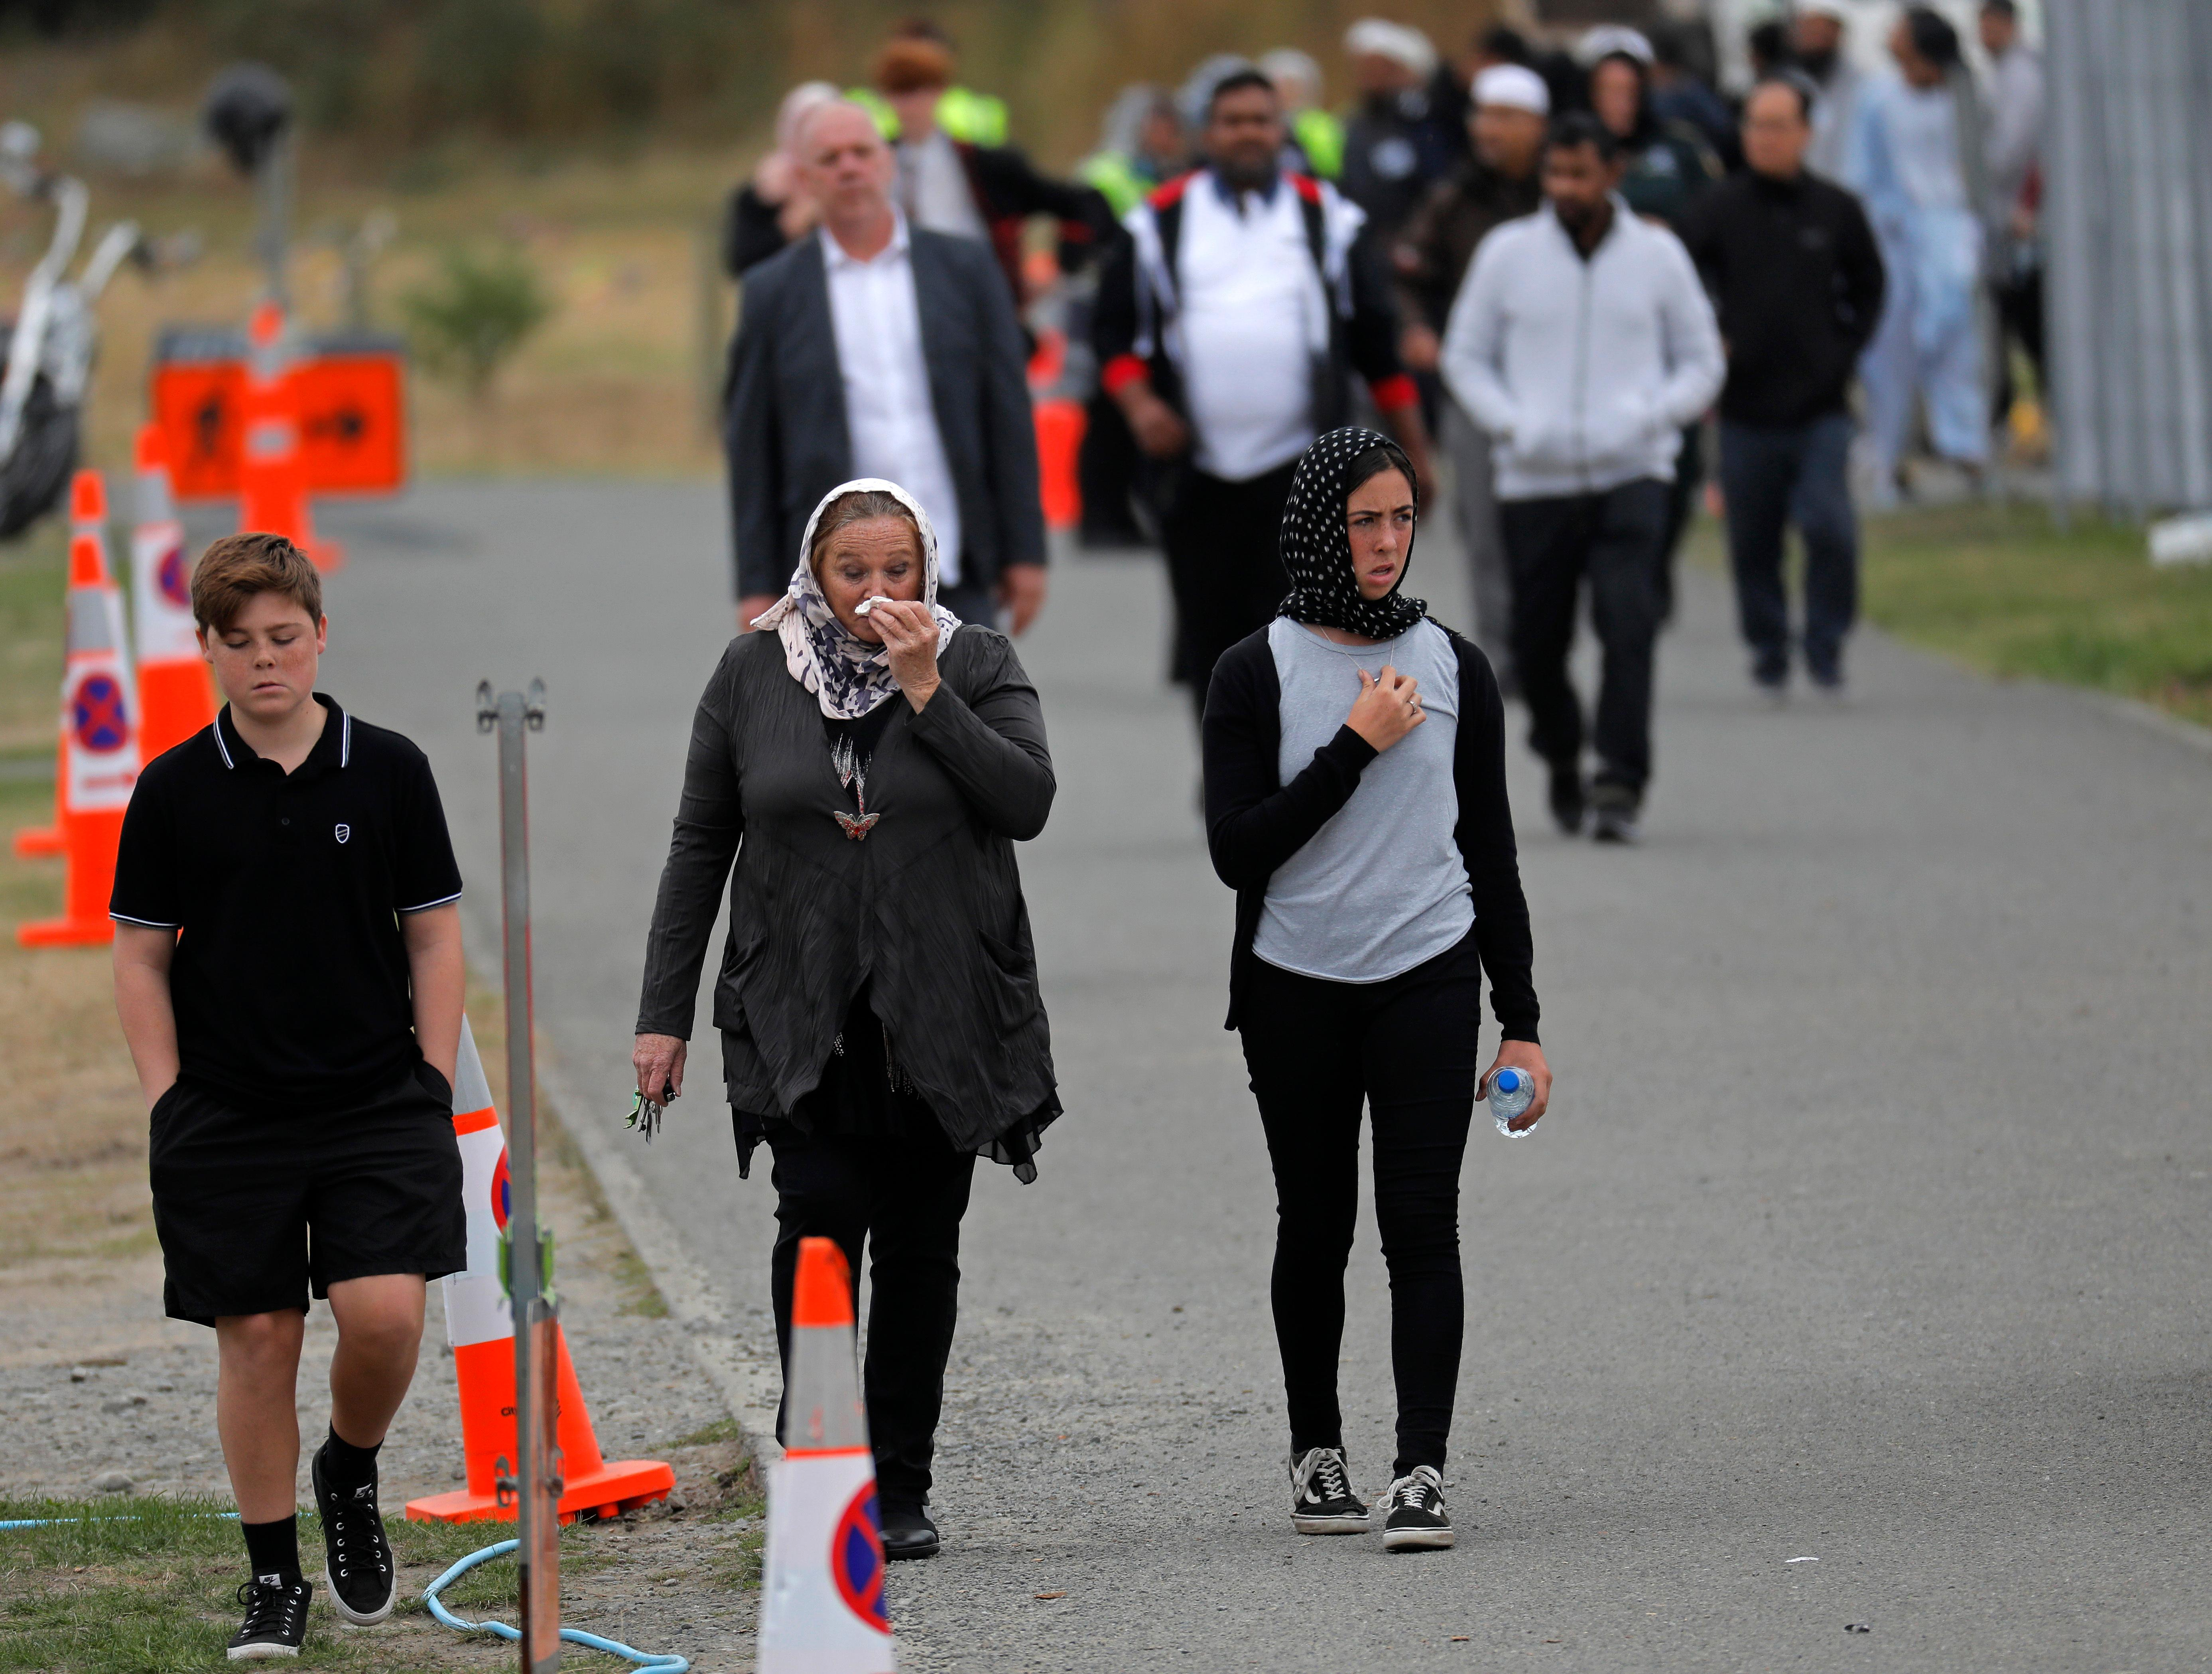 Mourners leave the cemetery after the burial service of a victim of the Friday March 15 mosque shootings at the Memorial Park Cemetery in Christchurch, New Zealand, Thursday, March 21, 2019. (AP Photo/Vincent Yu)